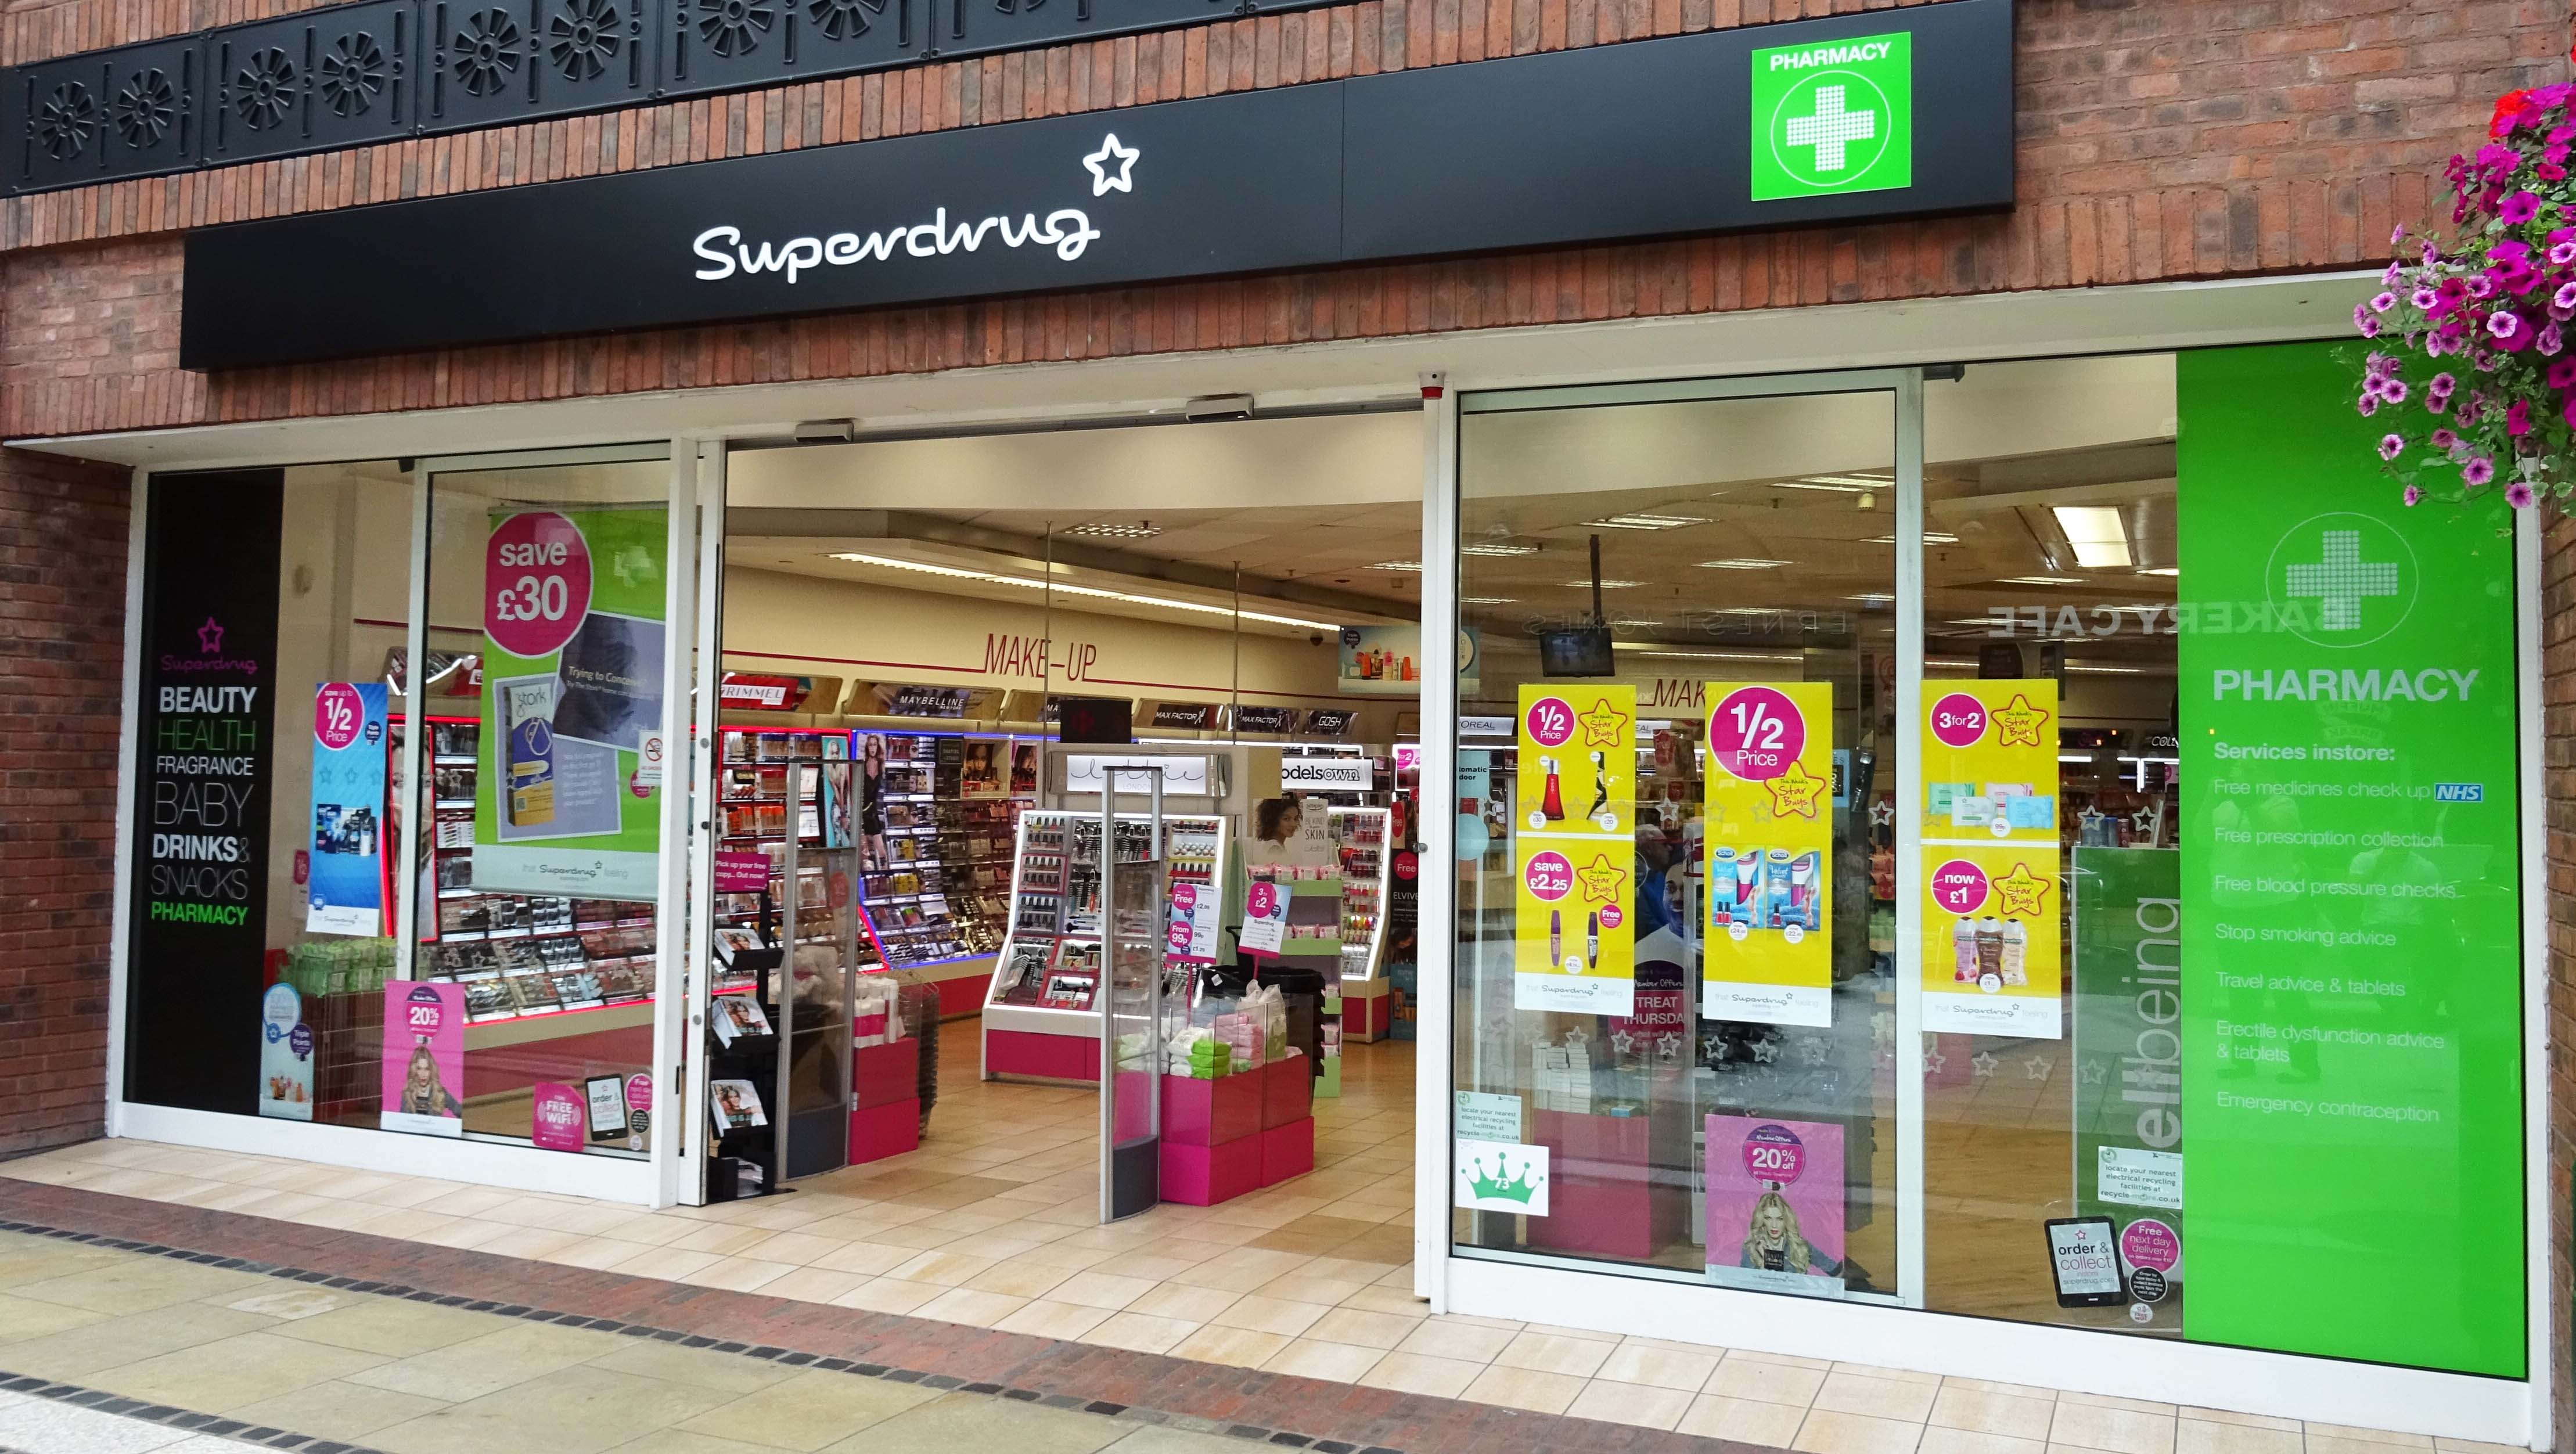 Looking for a new Job? Find a great career at Superdrug, leading health and beauty retailer with fantastic retail opportunities. Search and apply for a new job today!